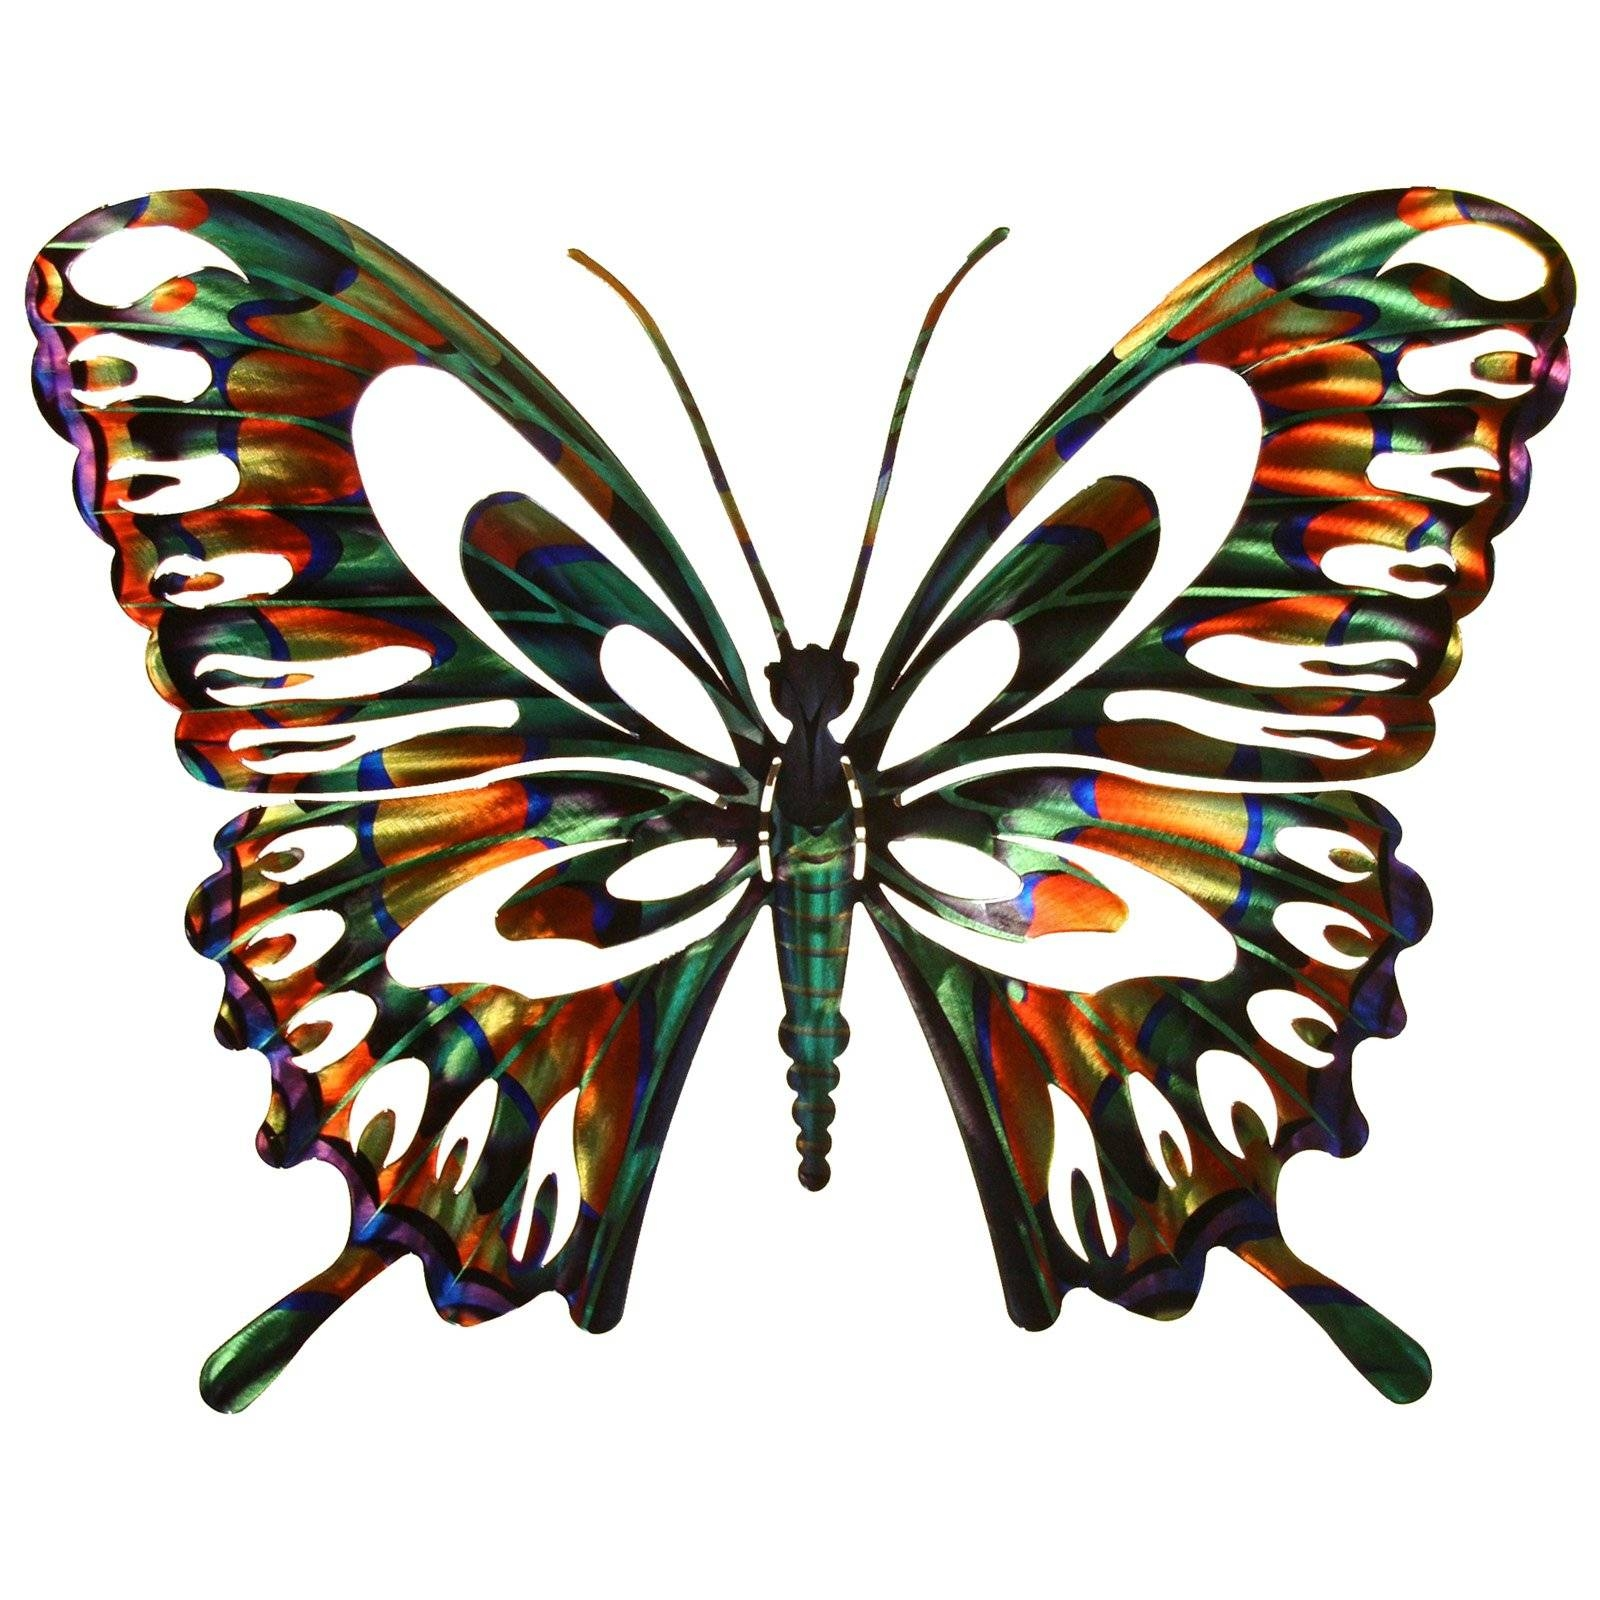 3D Butterfly Metal Outdoor Wall Art | Hayneedle Regarding Most Popular Large Garden Wall Art (View 1 of 25)